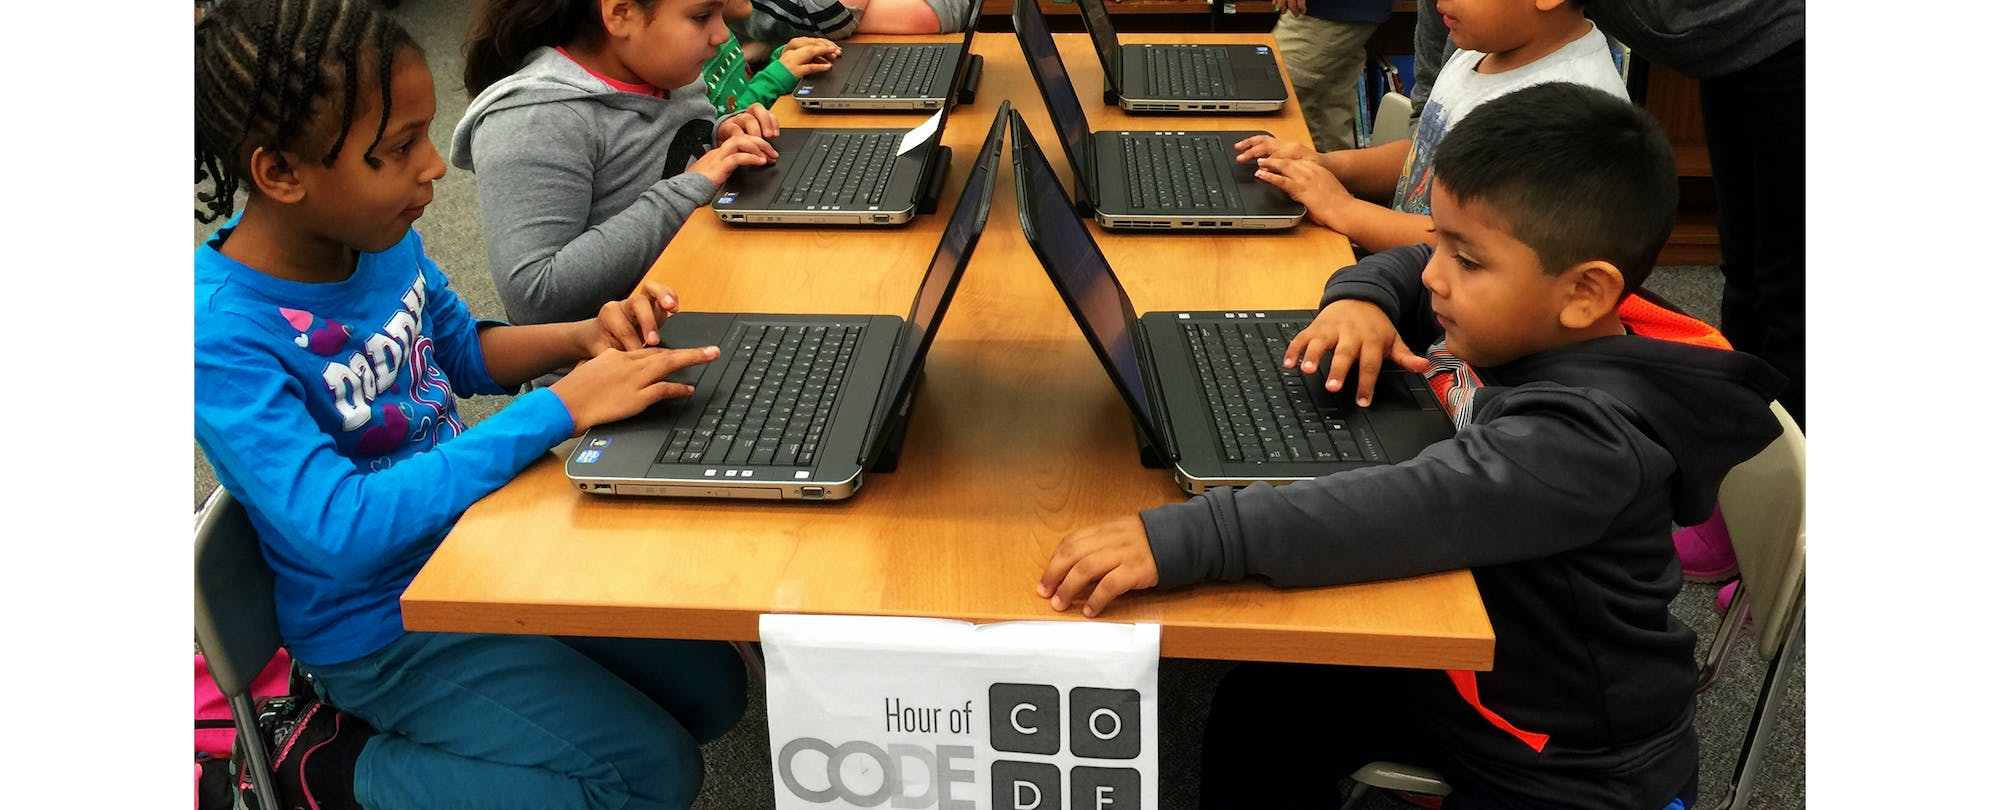 Google, Facebook, Amazon Among Tech Titans Committing $300 Million to K-12 Computer Science